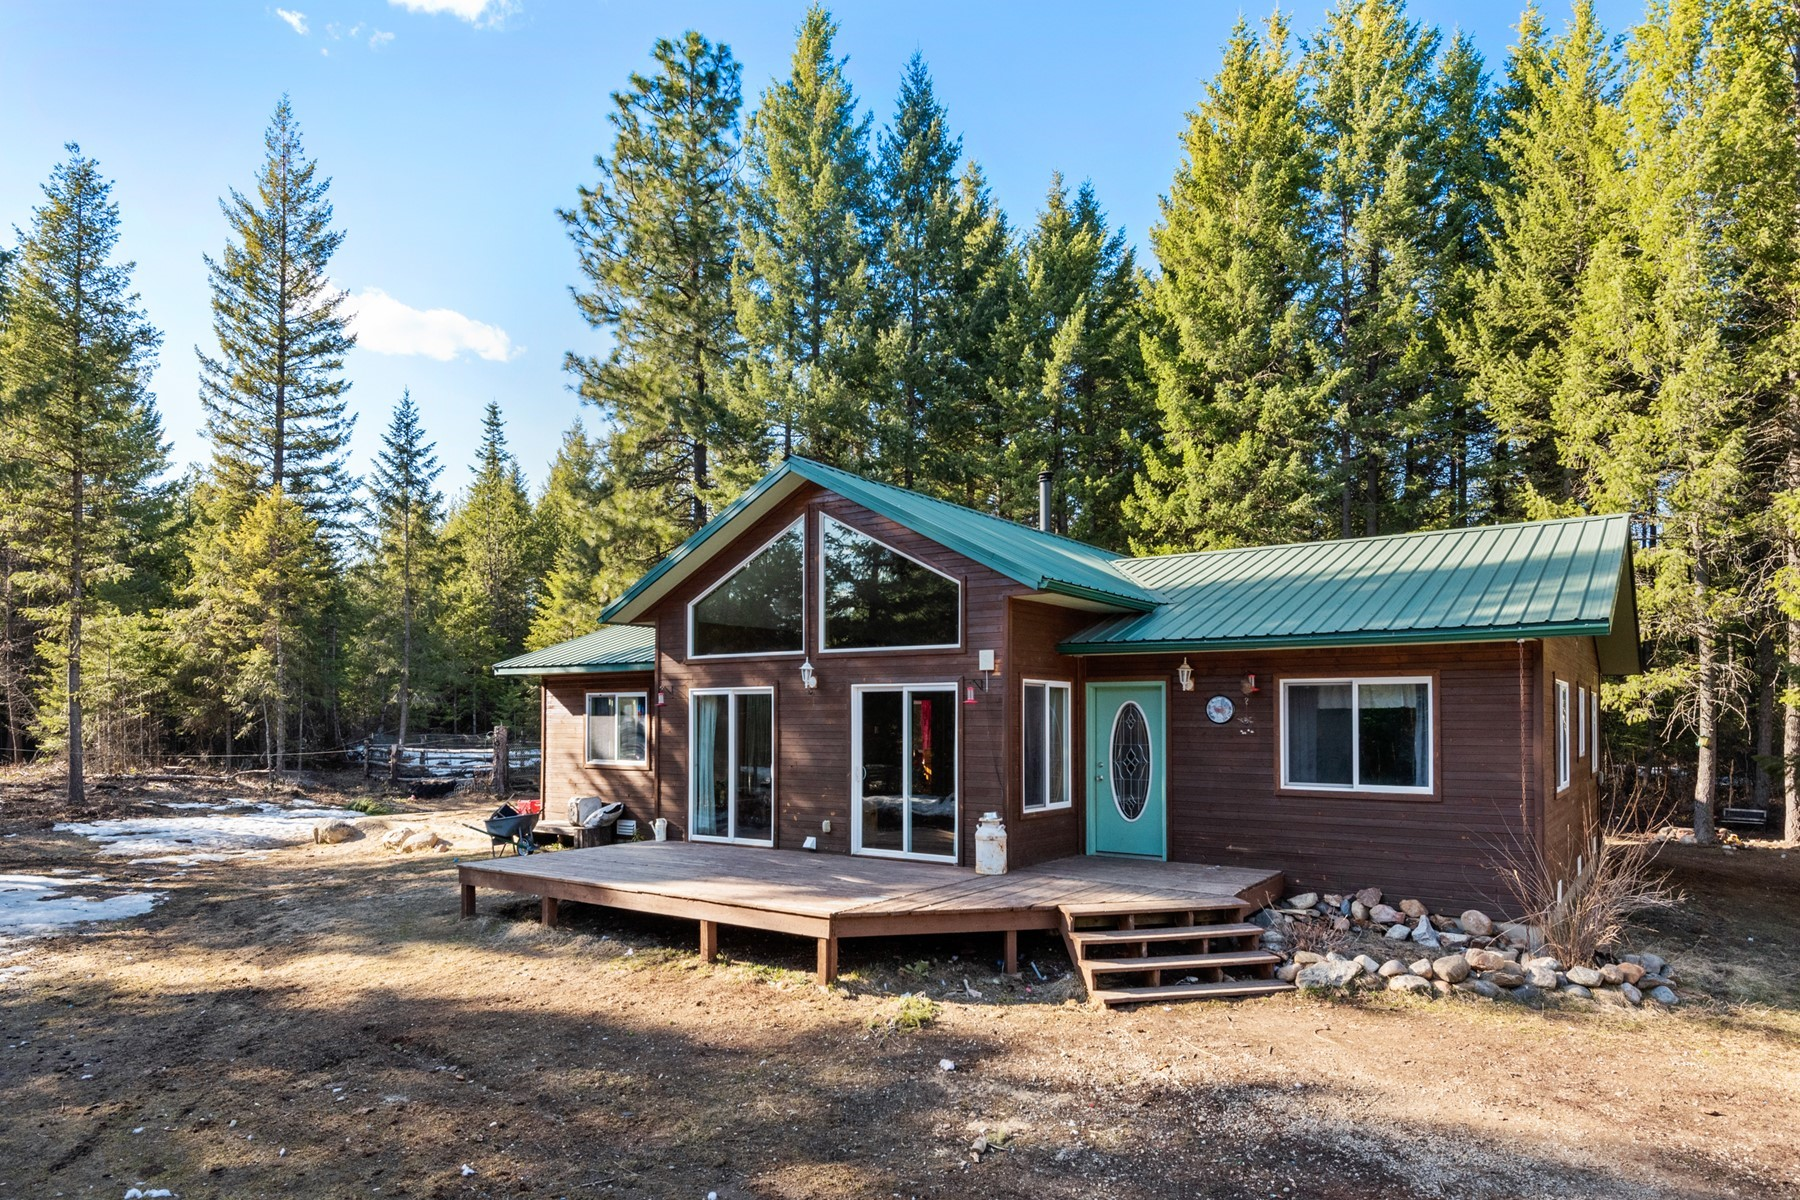 Single Family Homes for Sale at Home and Shop on 4.6 Acres 2190 Old Priest River Rd Priest River, Idaho 83856 United States